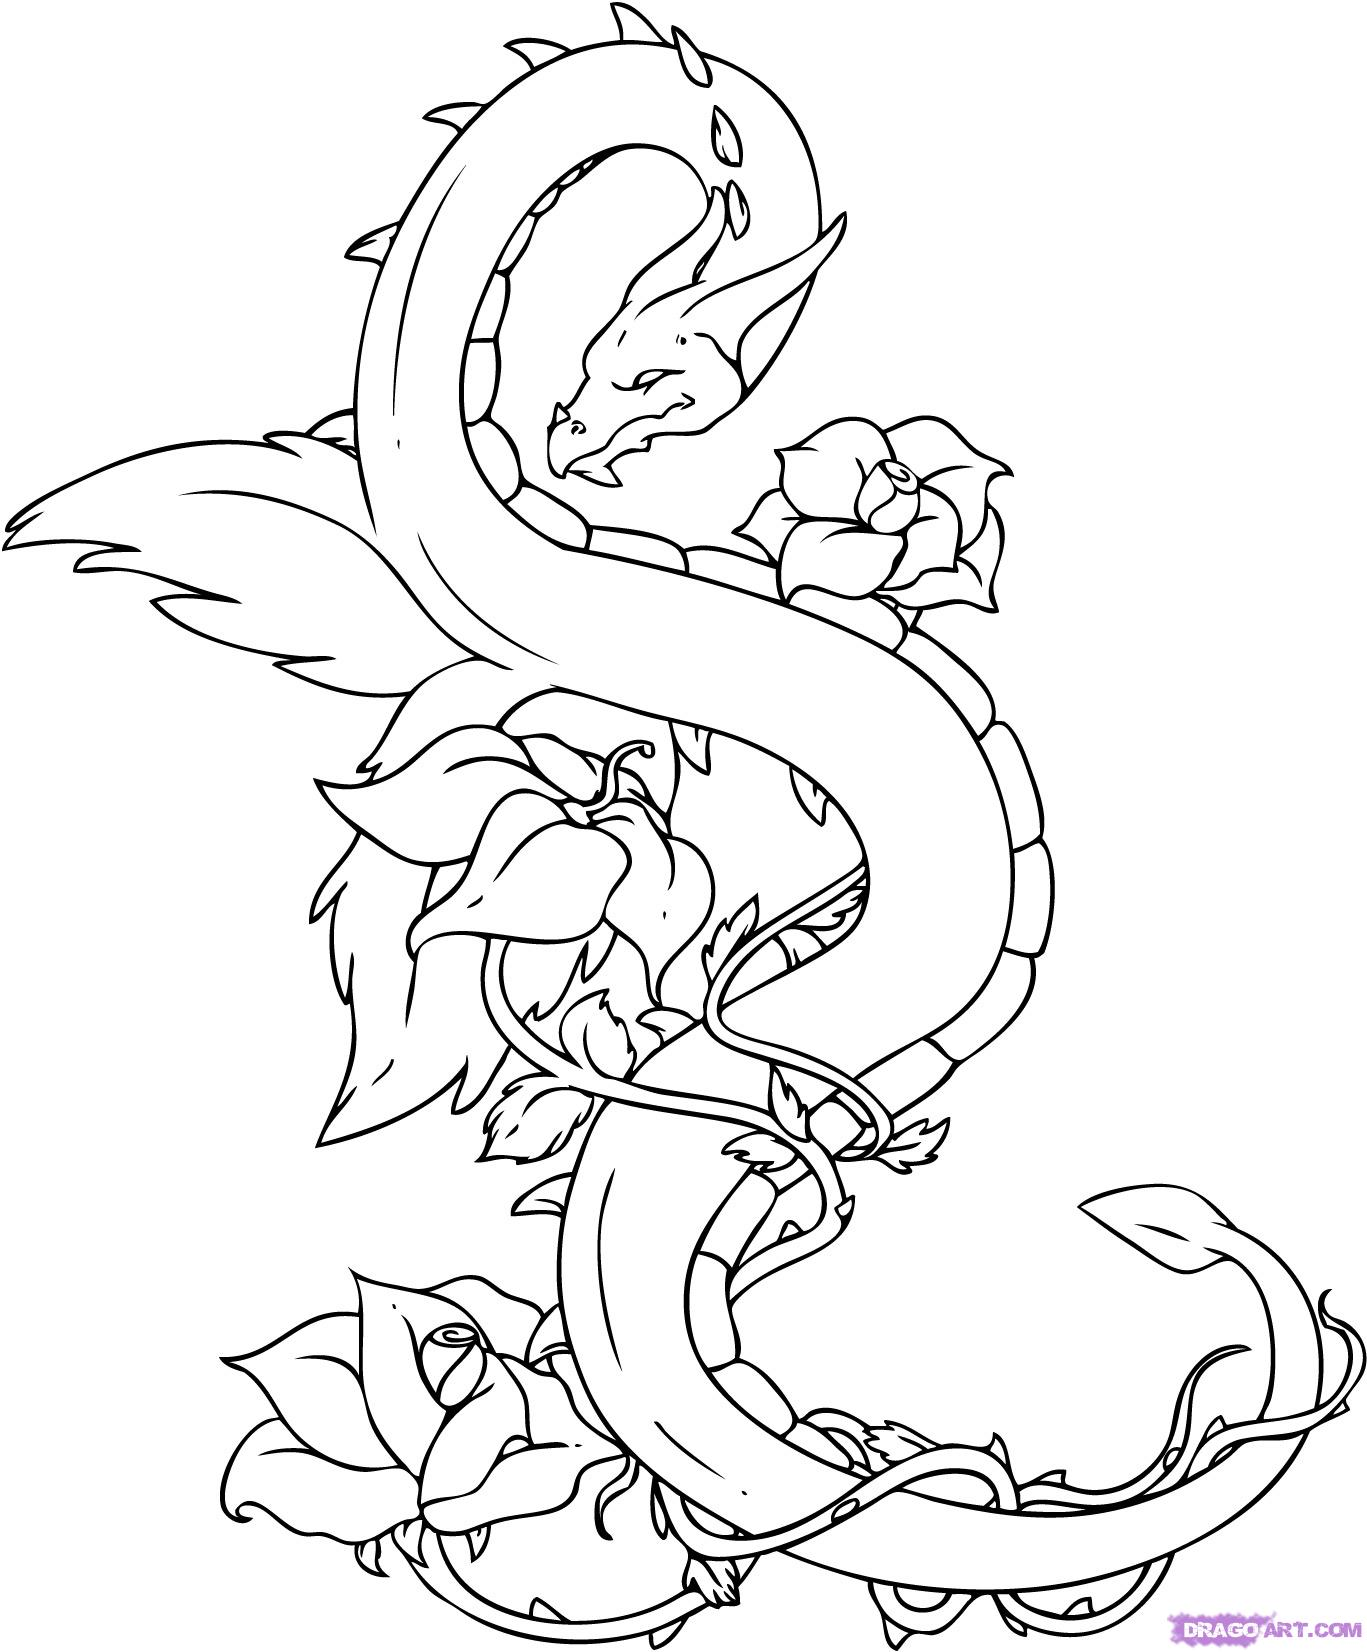 1367x1652 Drawn Water Dragon Step By Step